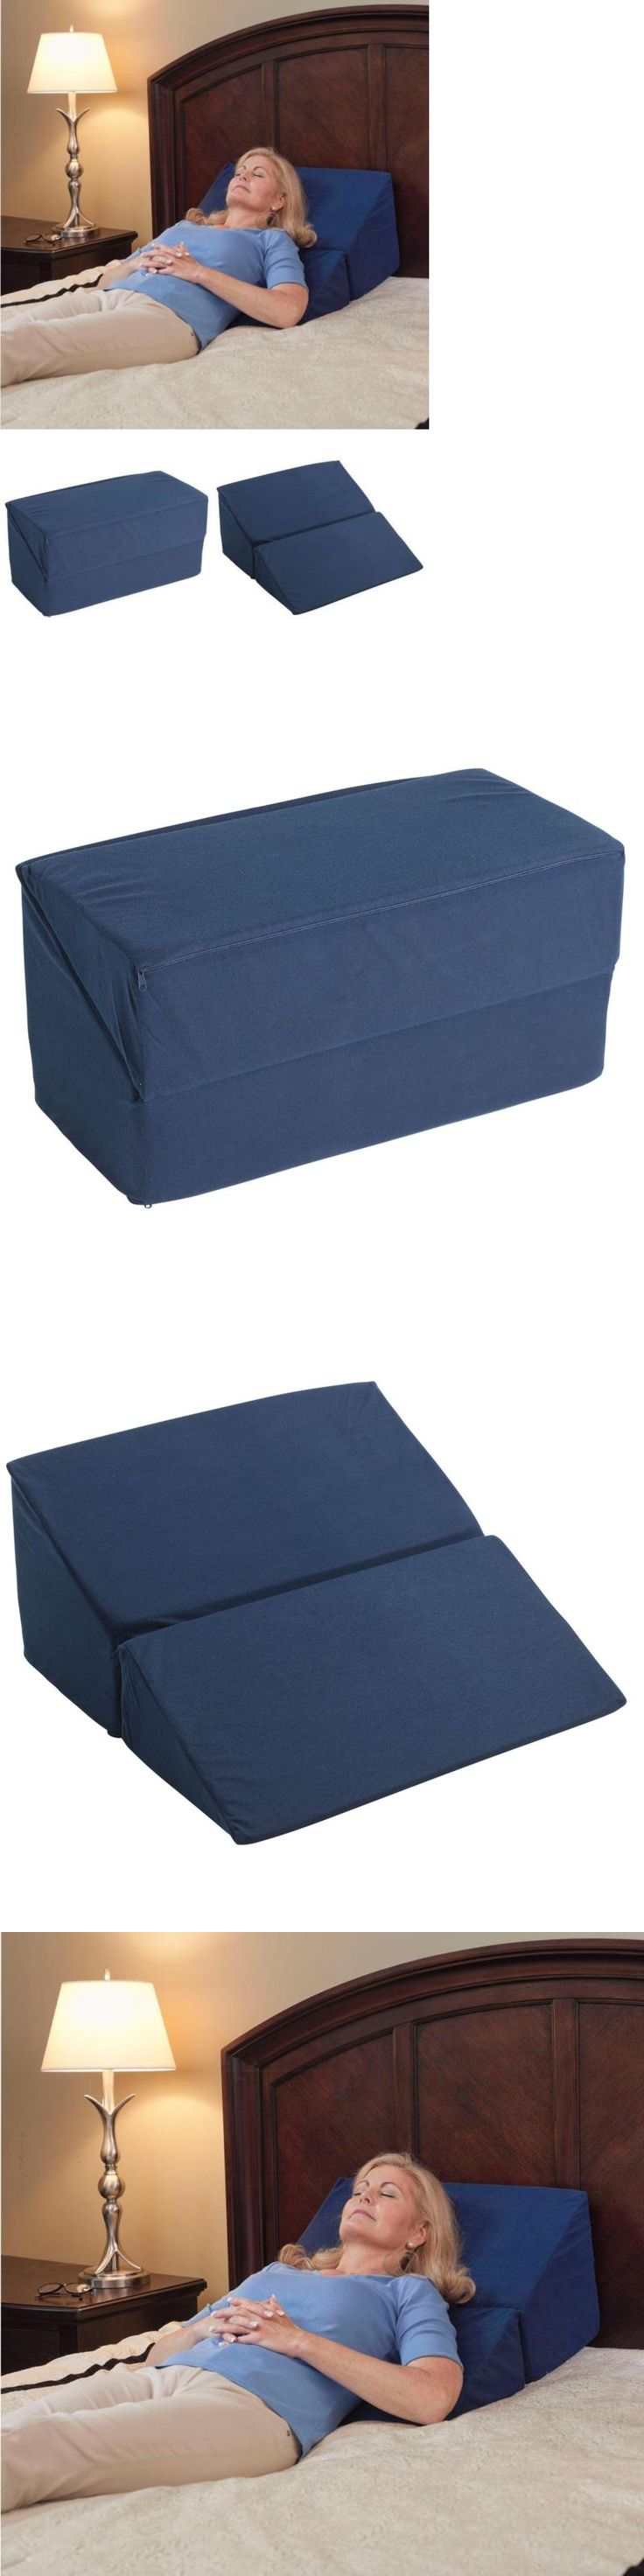 Wedges and Bed Positioners: Large Folding Bed Wedge Pillow For Acid Reflux Medical Elevate Support The Neck -> BUY IT NOW ONLY: $47.54 on eBay!